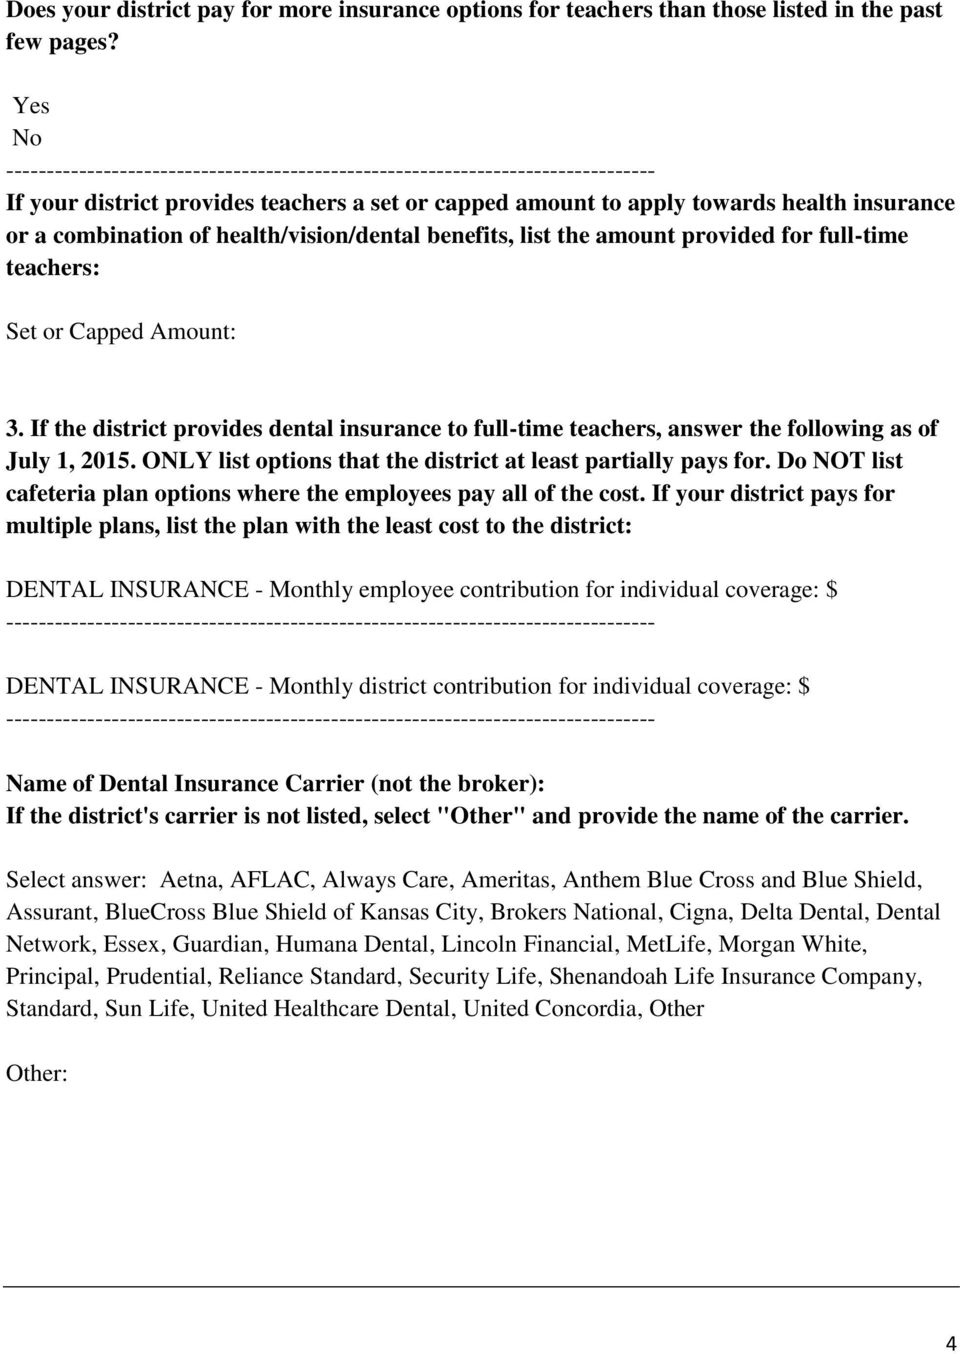 Capped Amount: 3. If the district provides dental insurance to full-time teachers, answer the following as of July 1, 2015. ONLY list options that the district at least partially pays for.